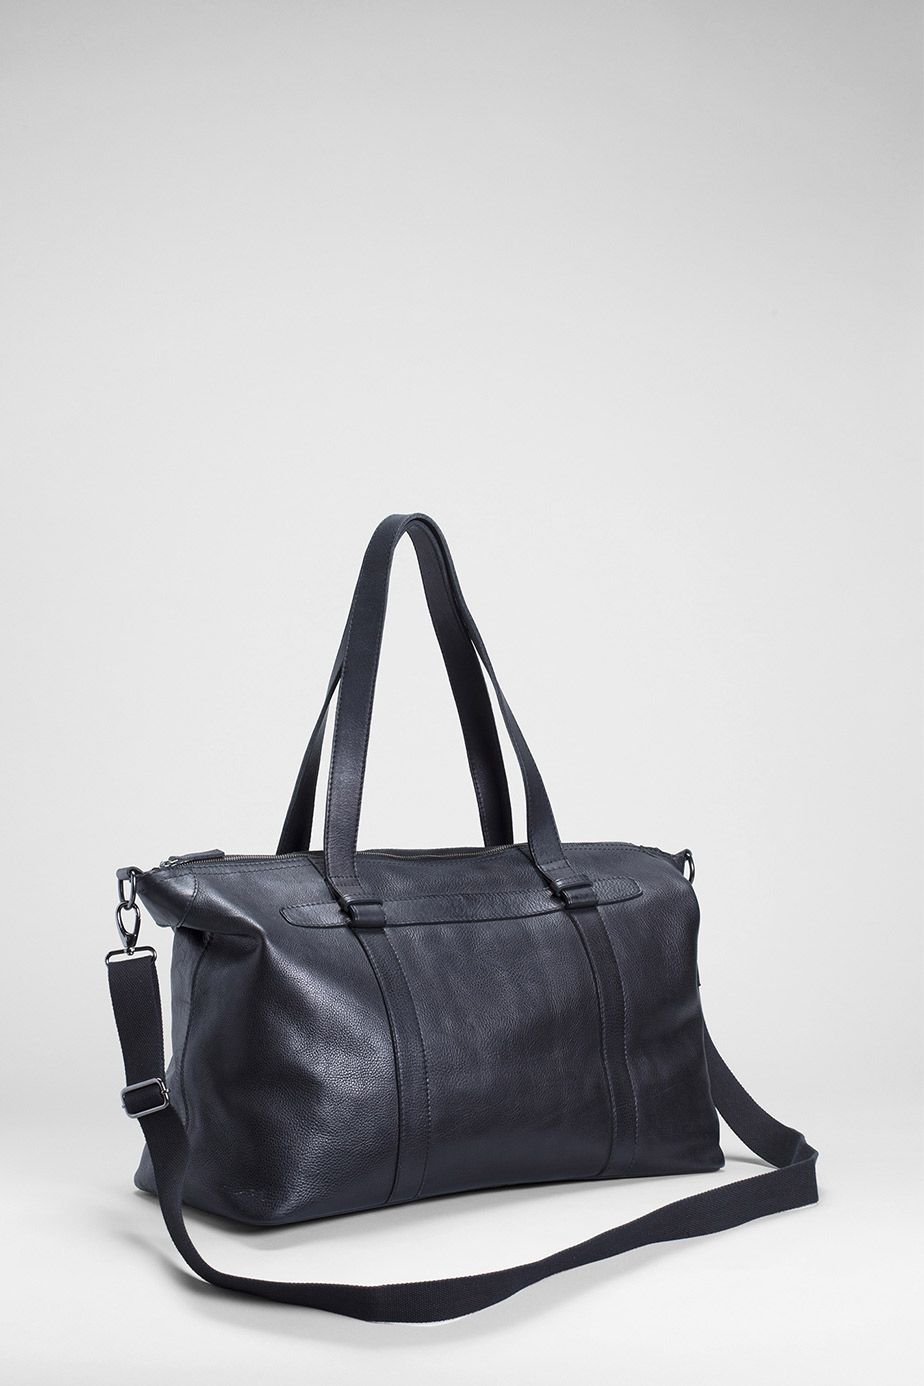 Elk-Mand Overnight Bag | Black